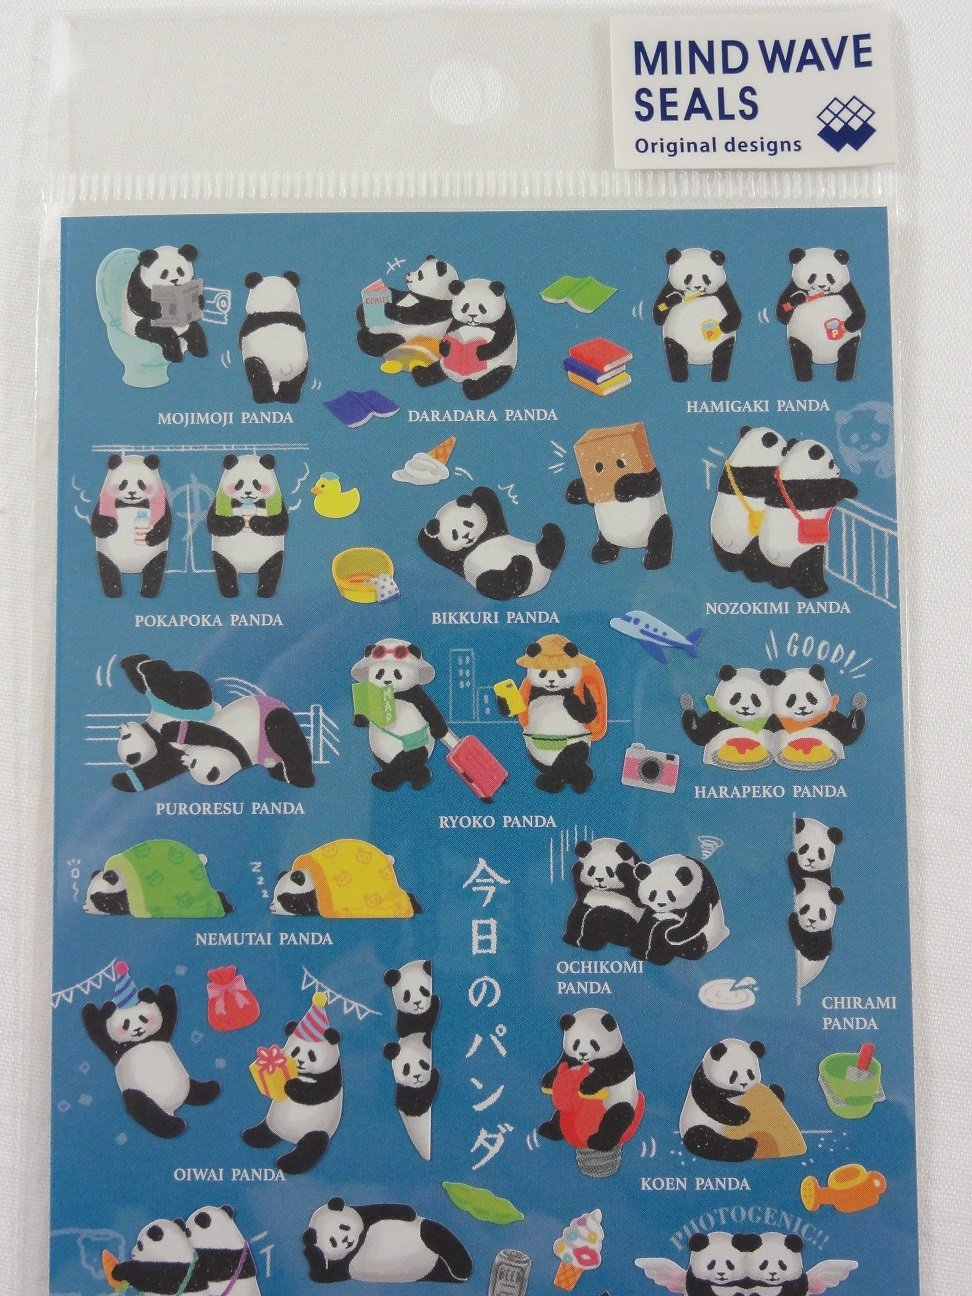 Cute Kawaii Mind Wave Panda Bear Activities Sticker Sheet - for Journal Planner Craft Scrapbook Organizer Calendar Notebook